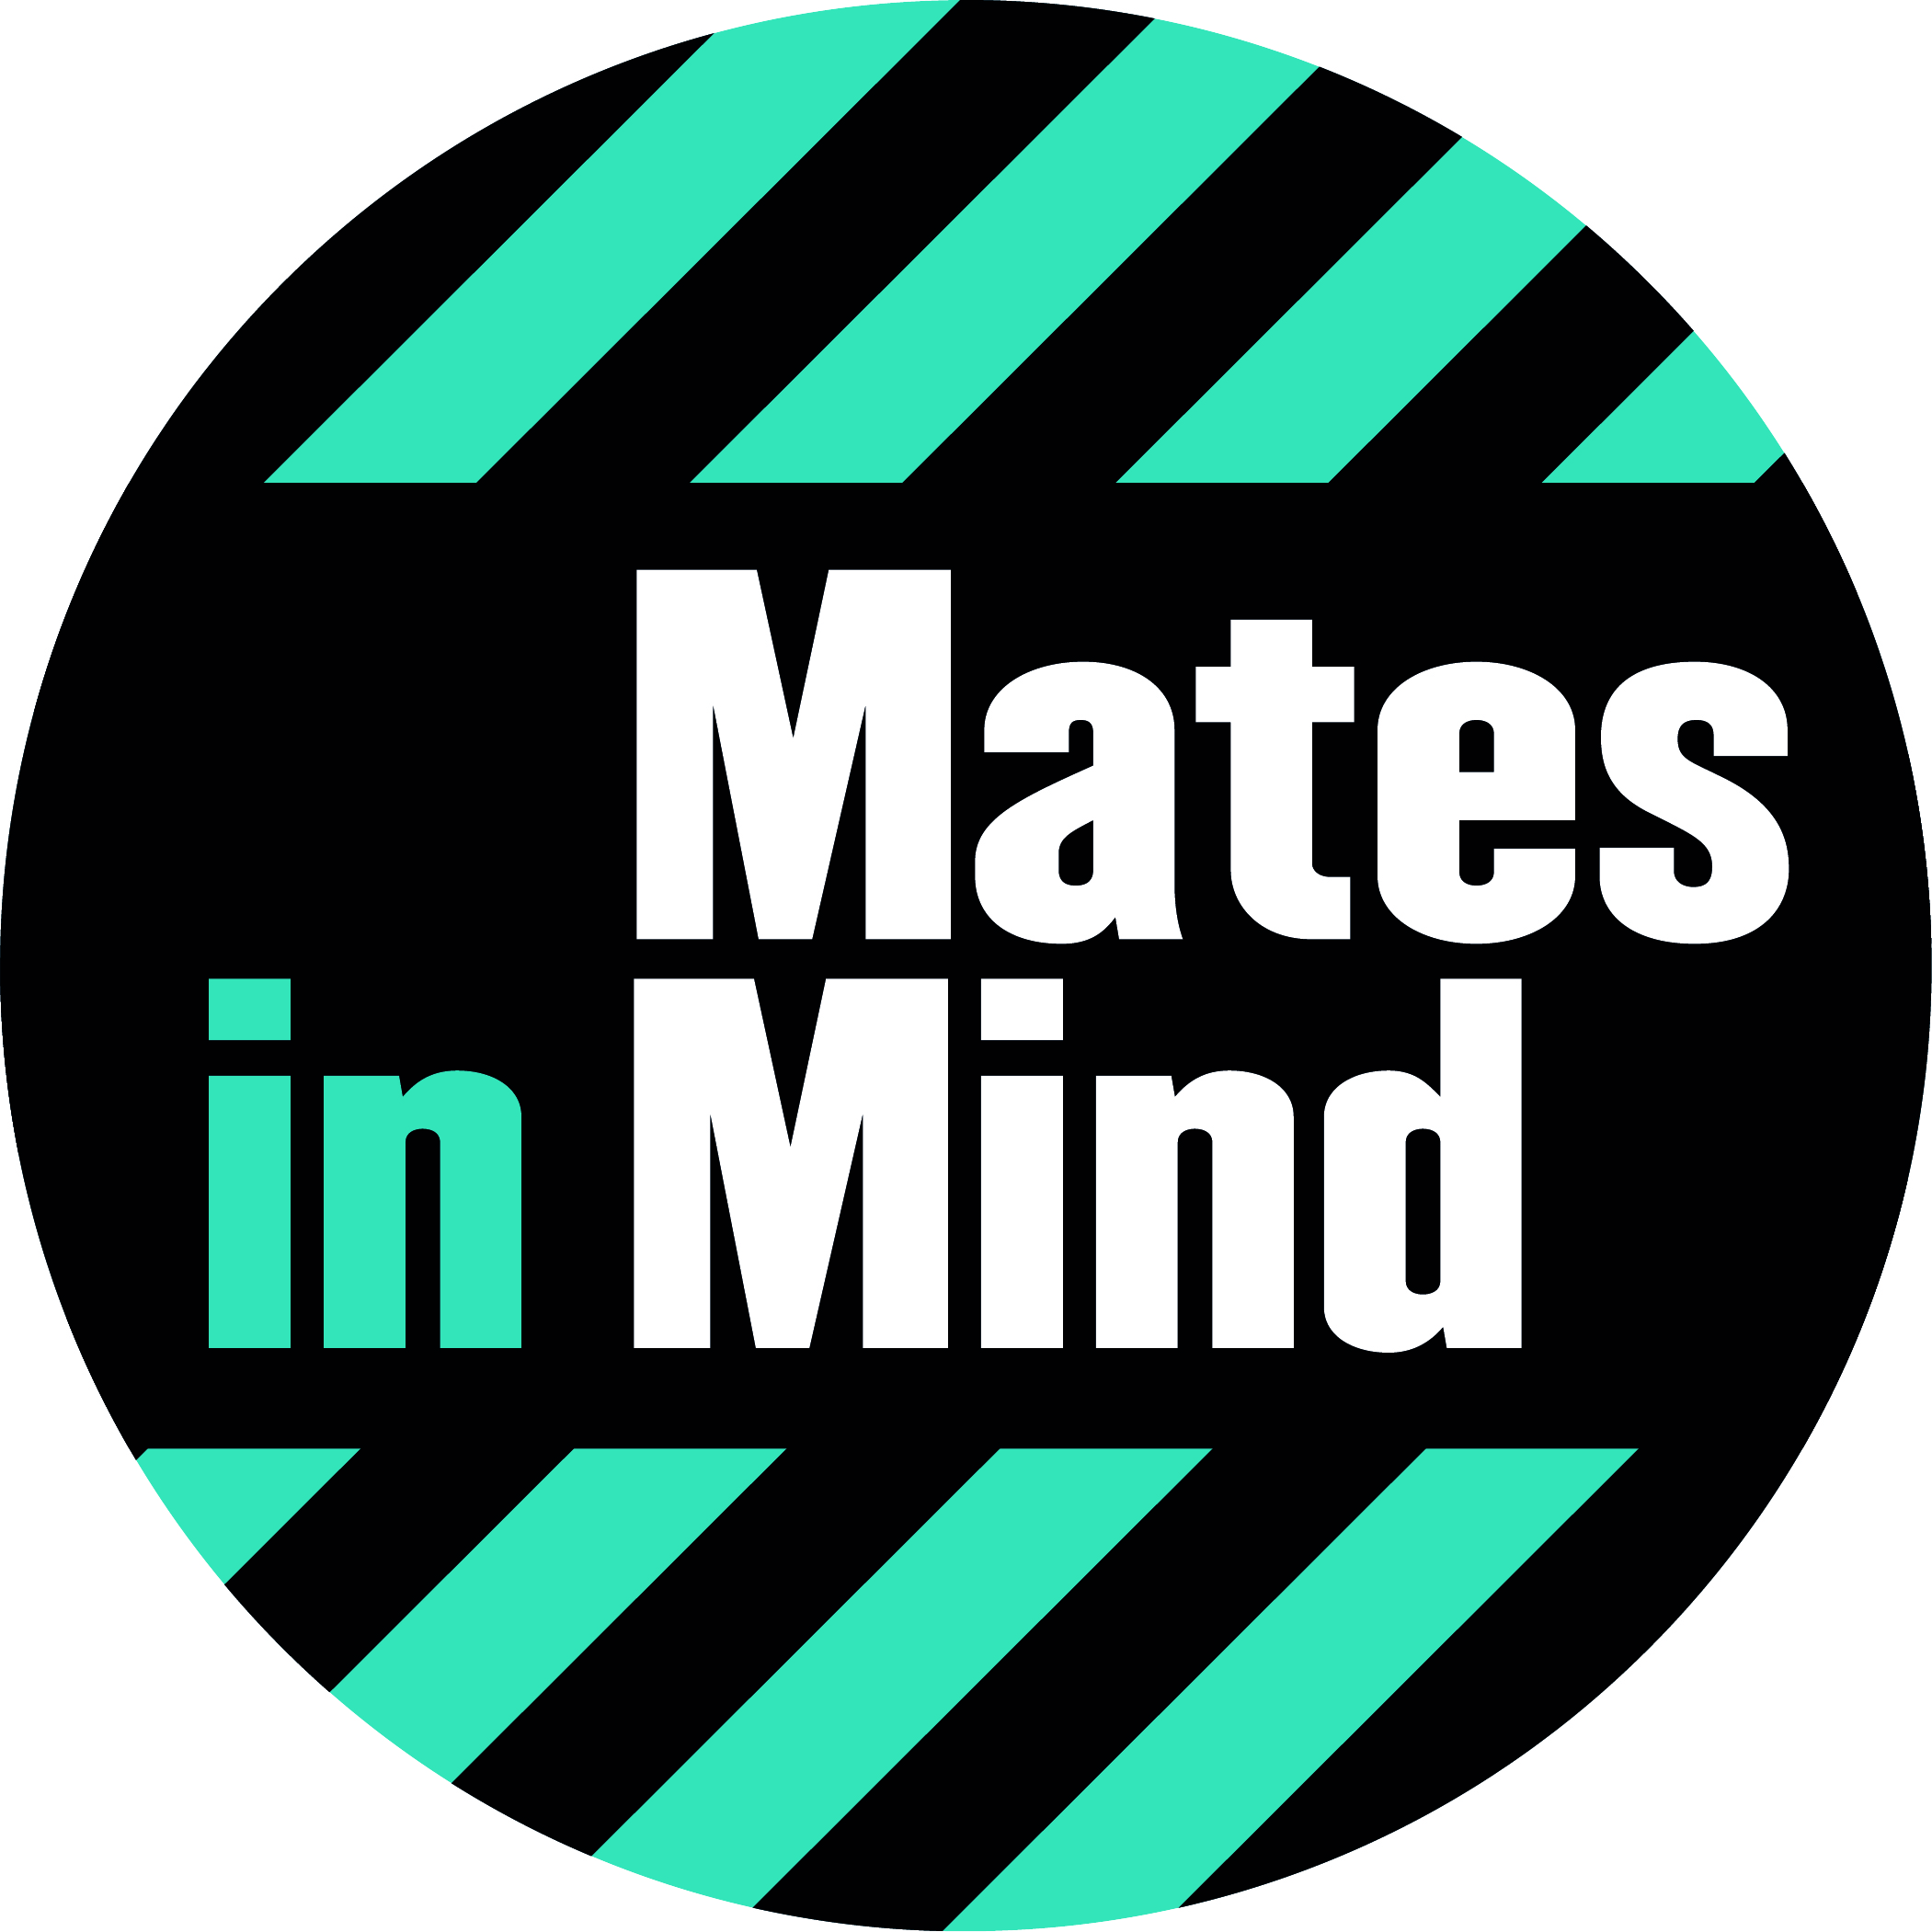 Mates In Mind chosen as the nominated charity for the 2nd annual British Demolition Awards in 2019